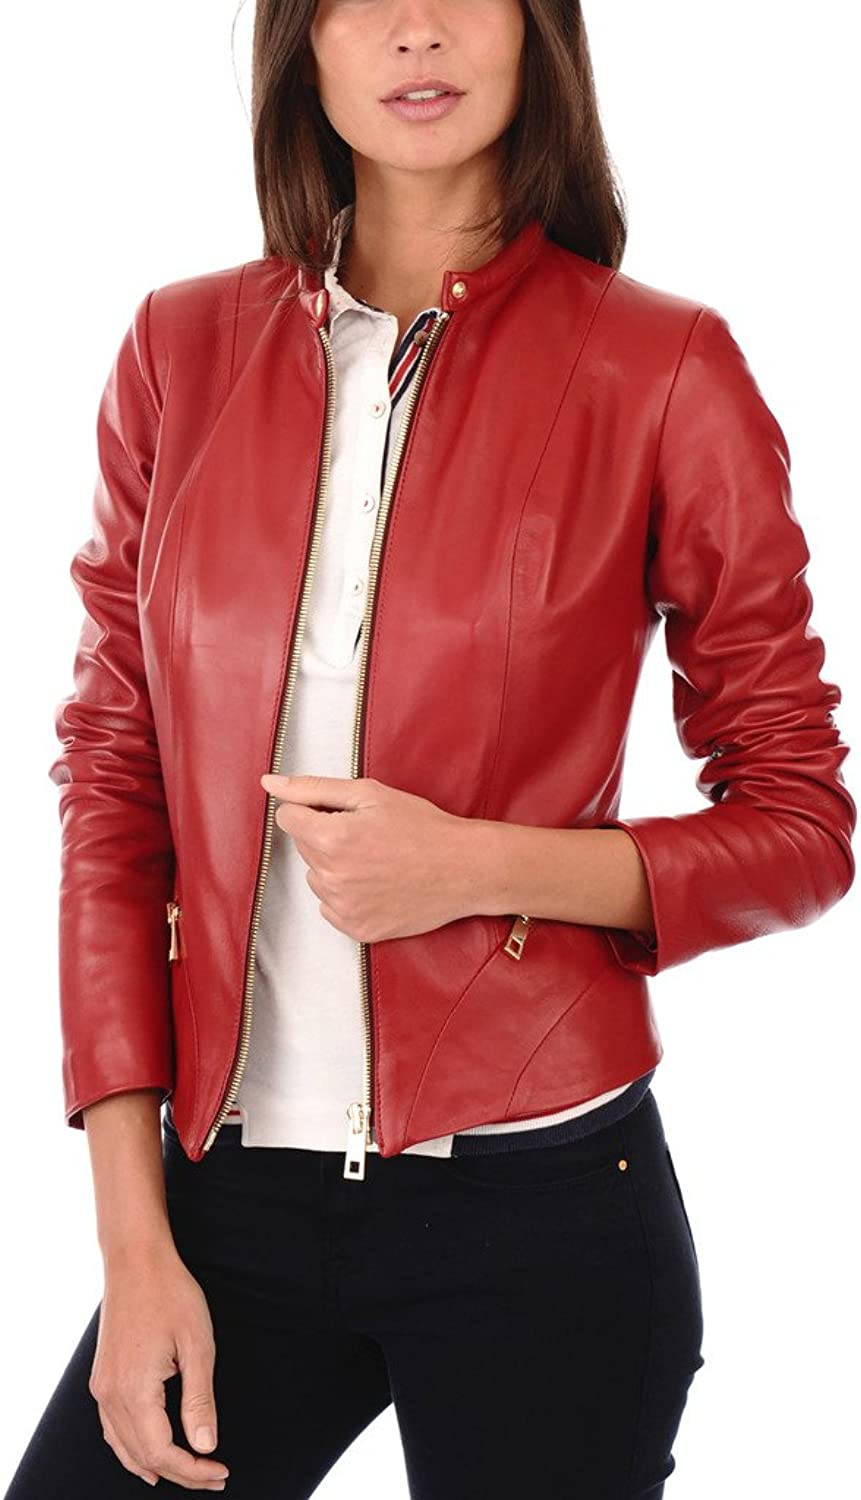 FS Lambskin Leather Women's Bomber Biker Jacket XSmall Red